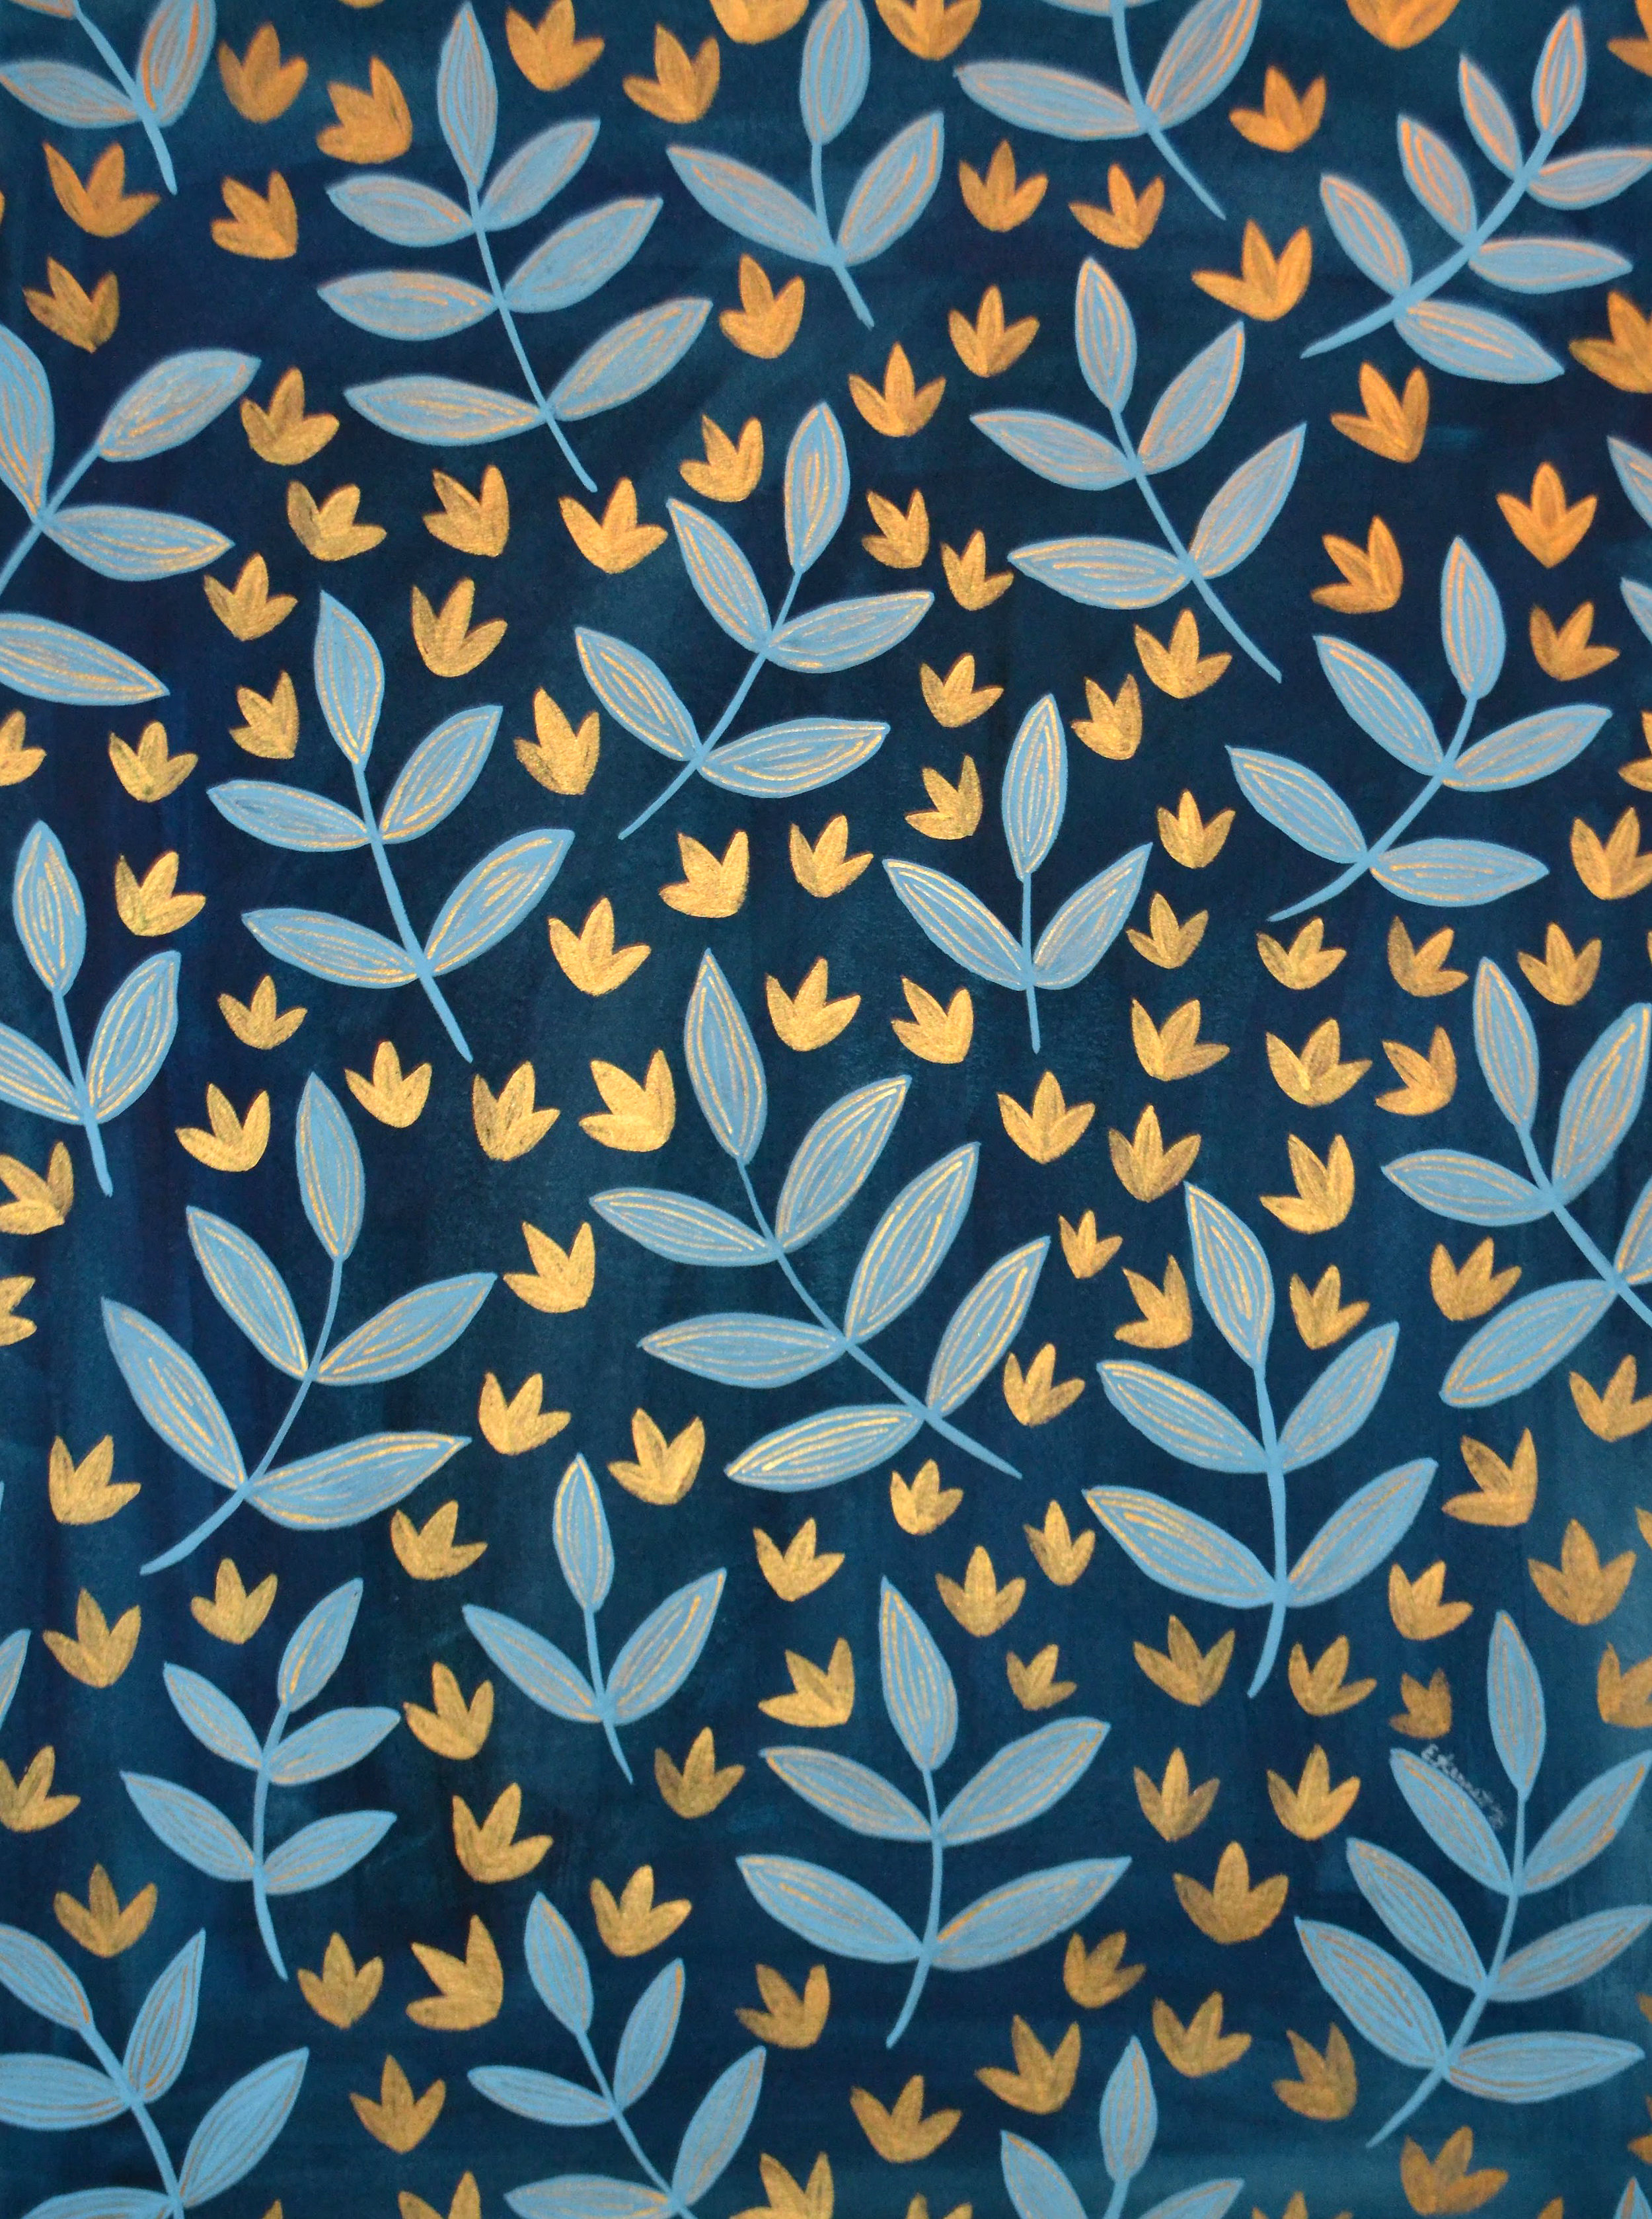 blue and gold leaves.jpg